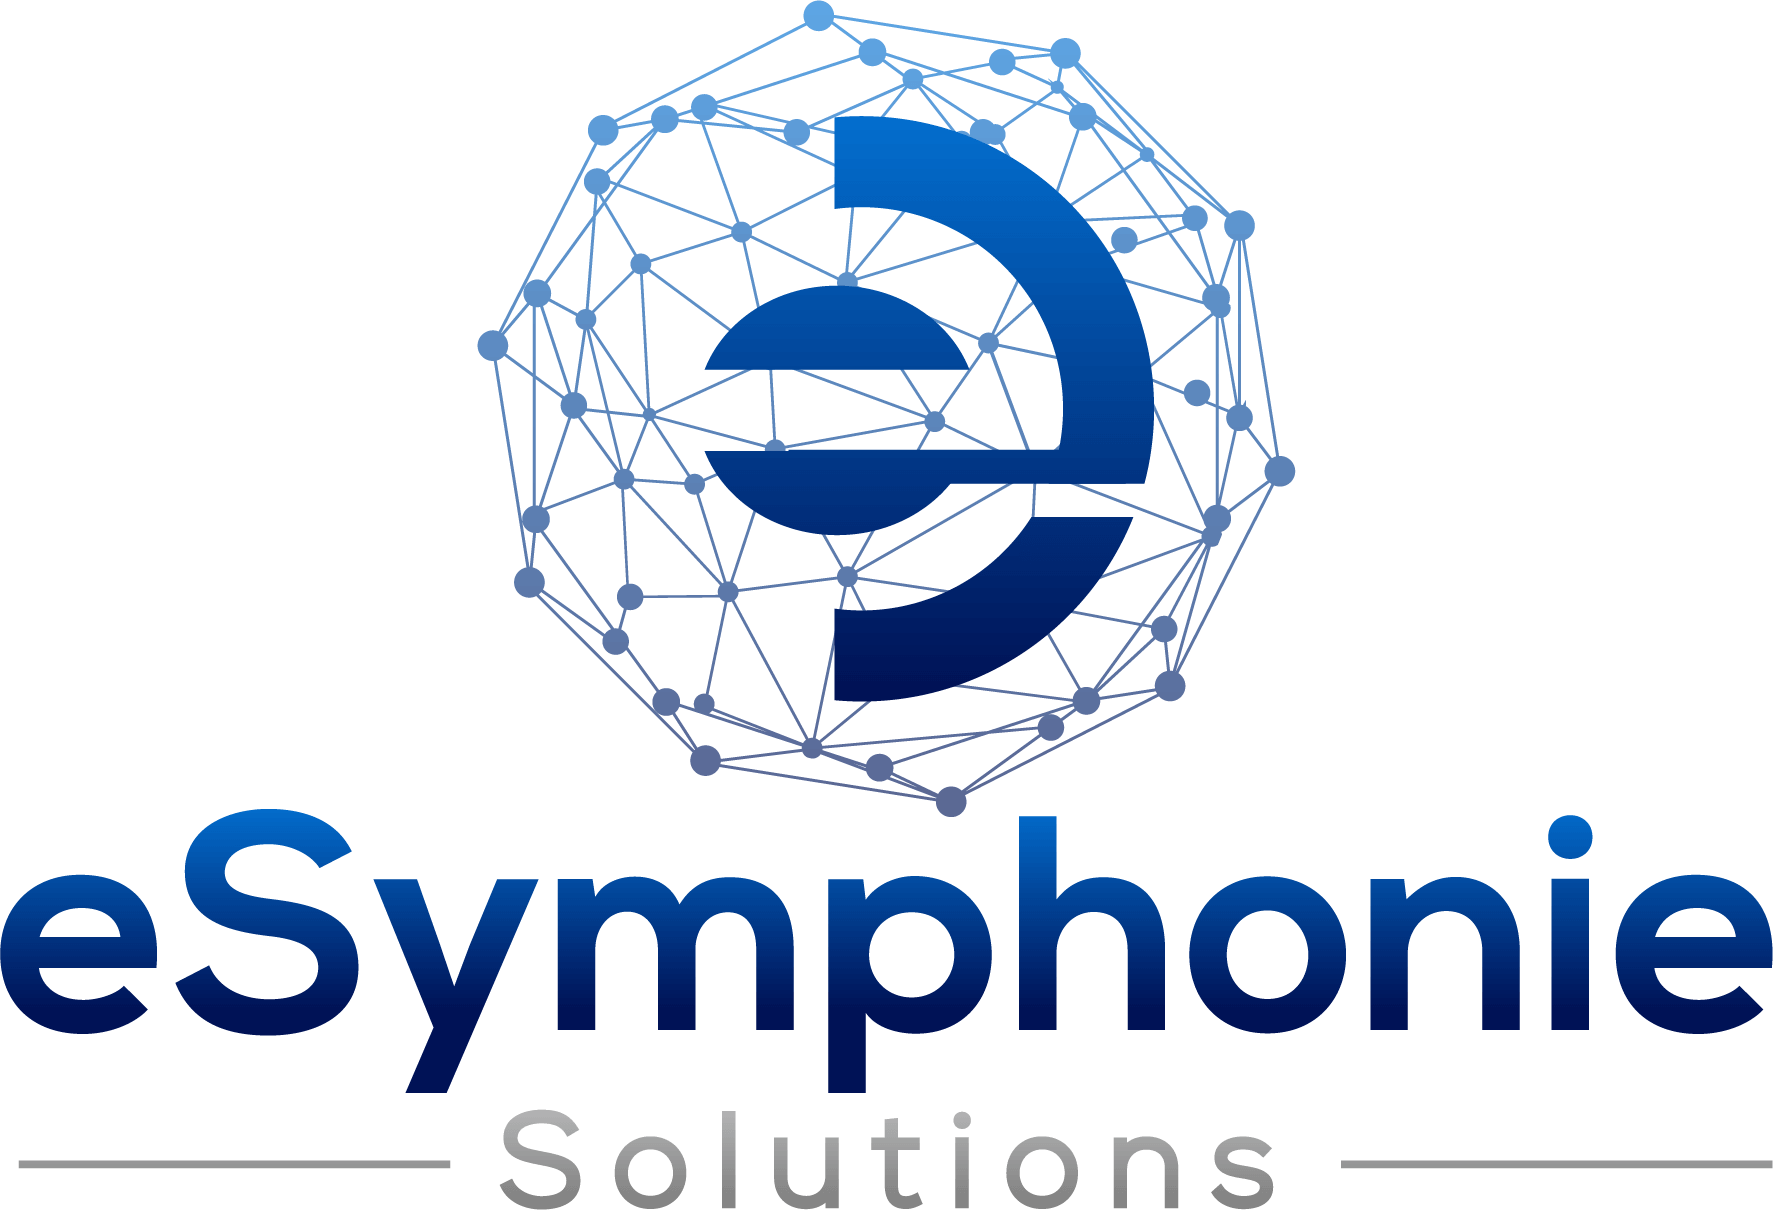 eSymphonie Solutions